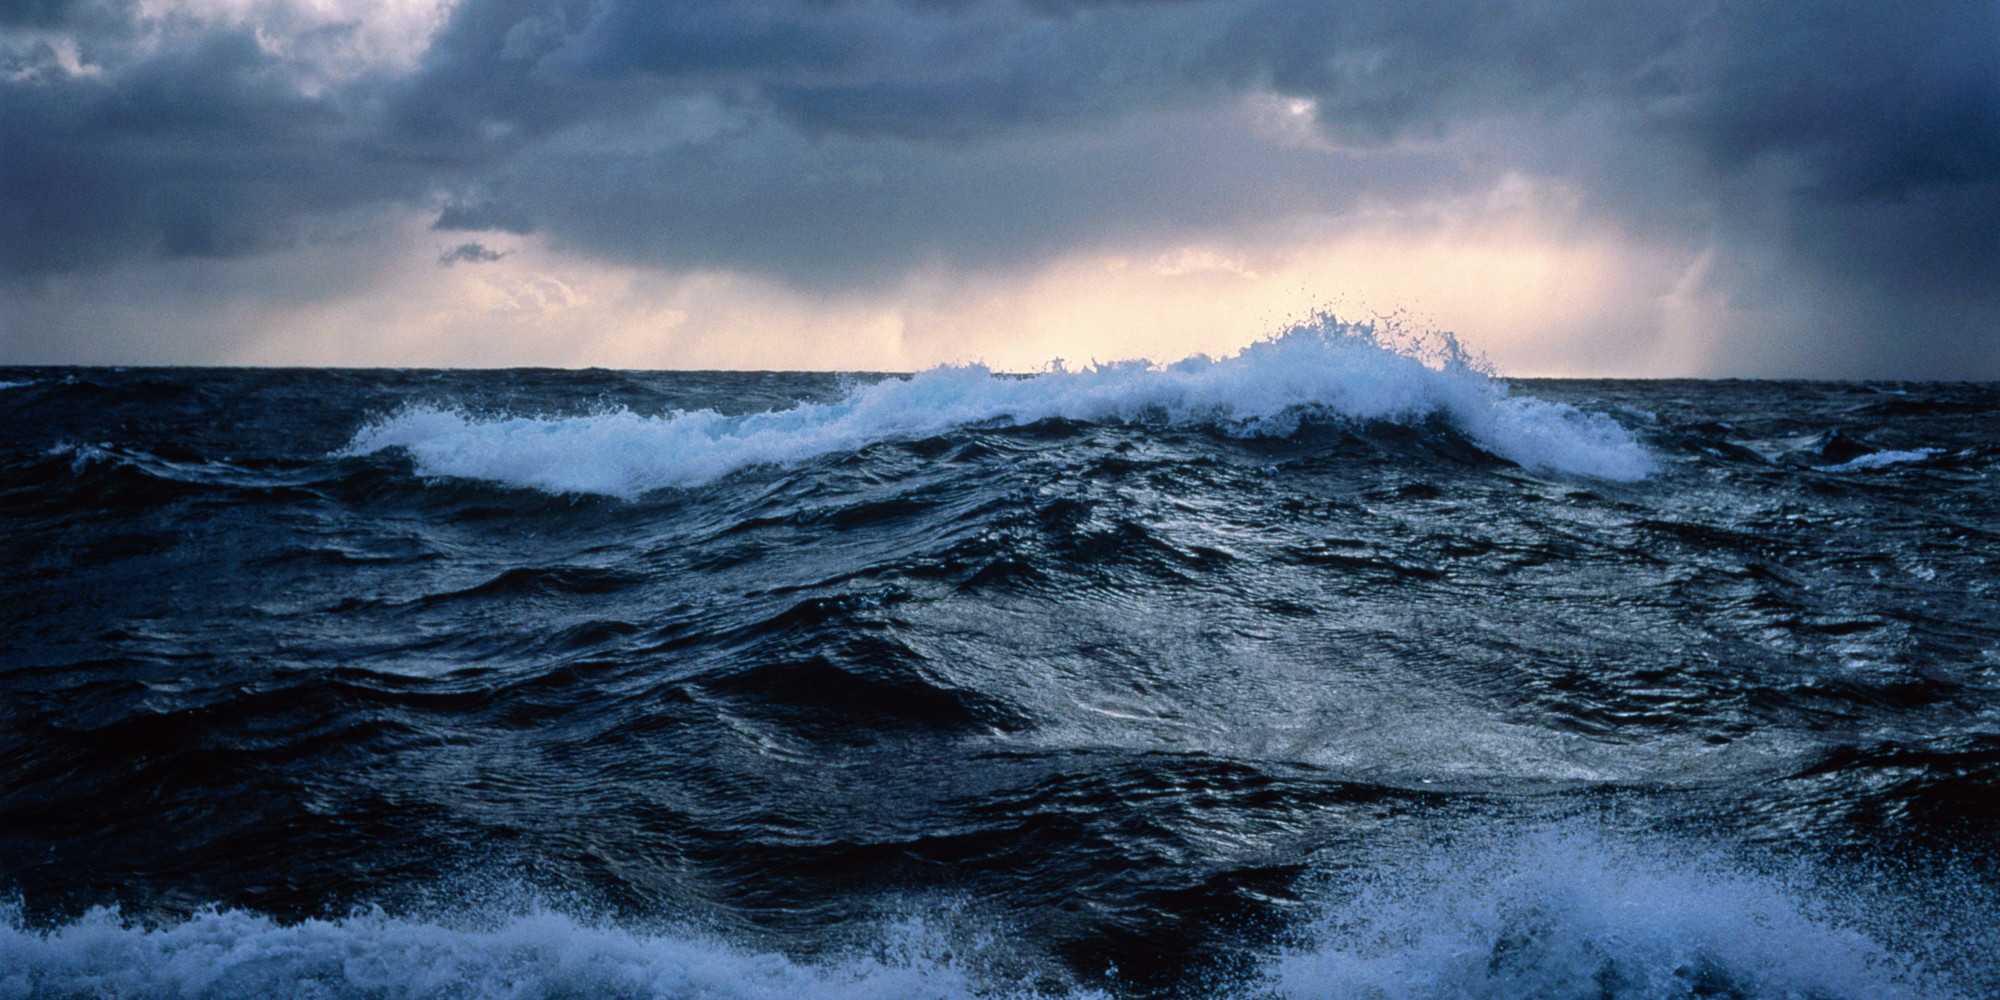 Pacific Ocean Warming at Fastest Rate in 10,000 Years ...